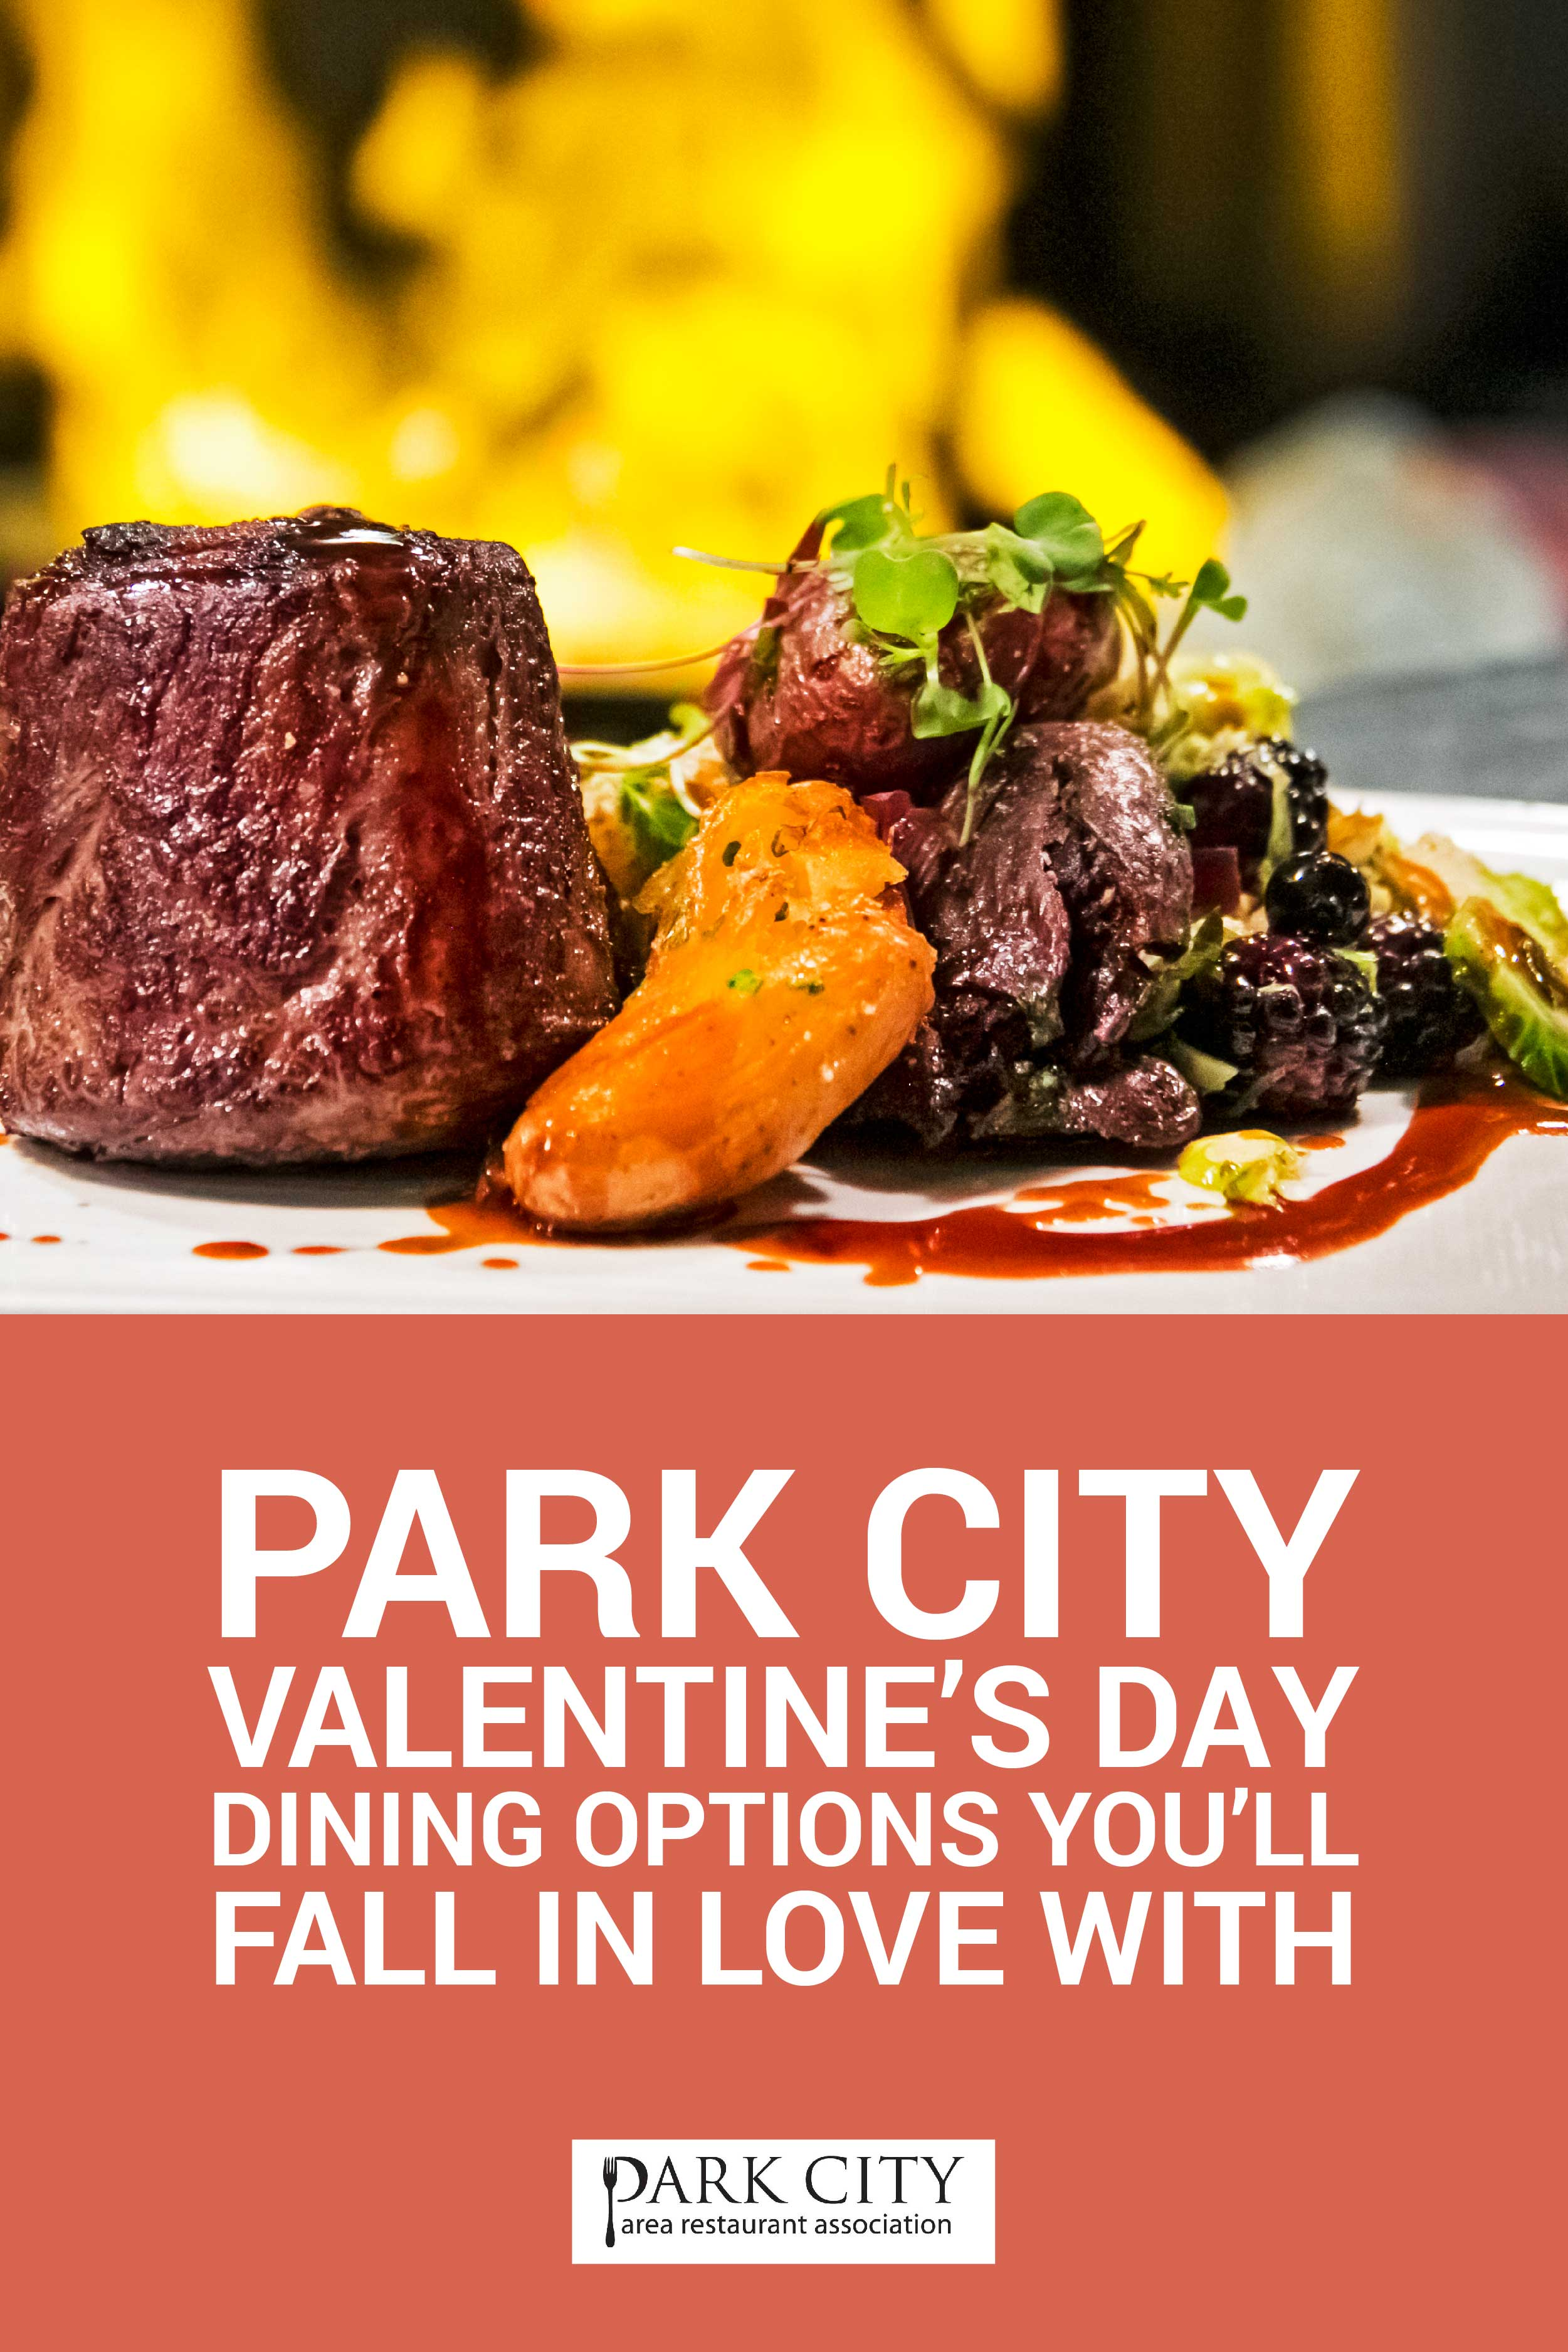 Where to eat on Valentine's Day in Park City